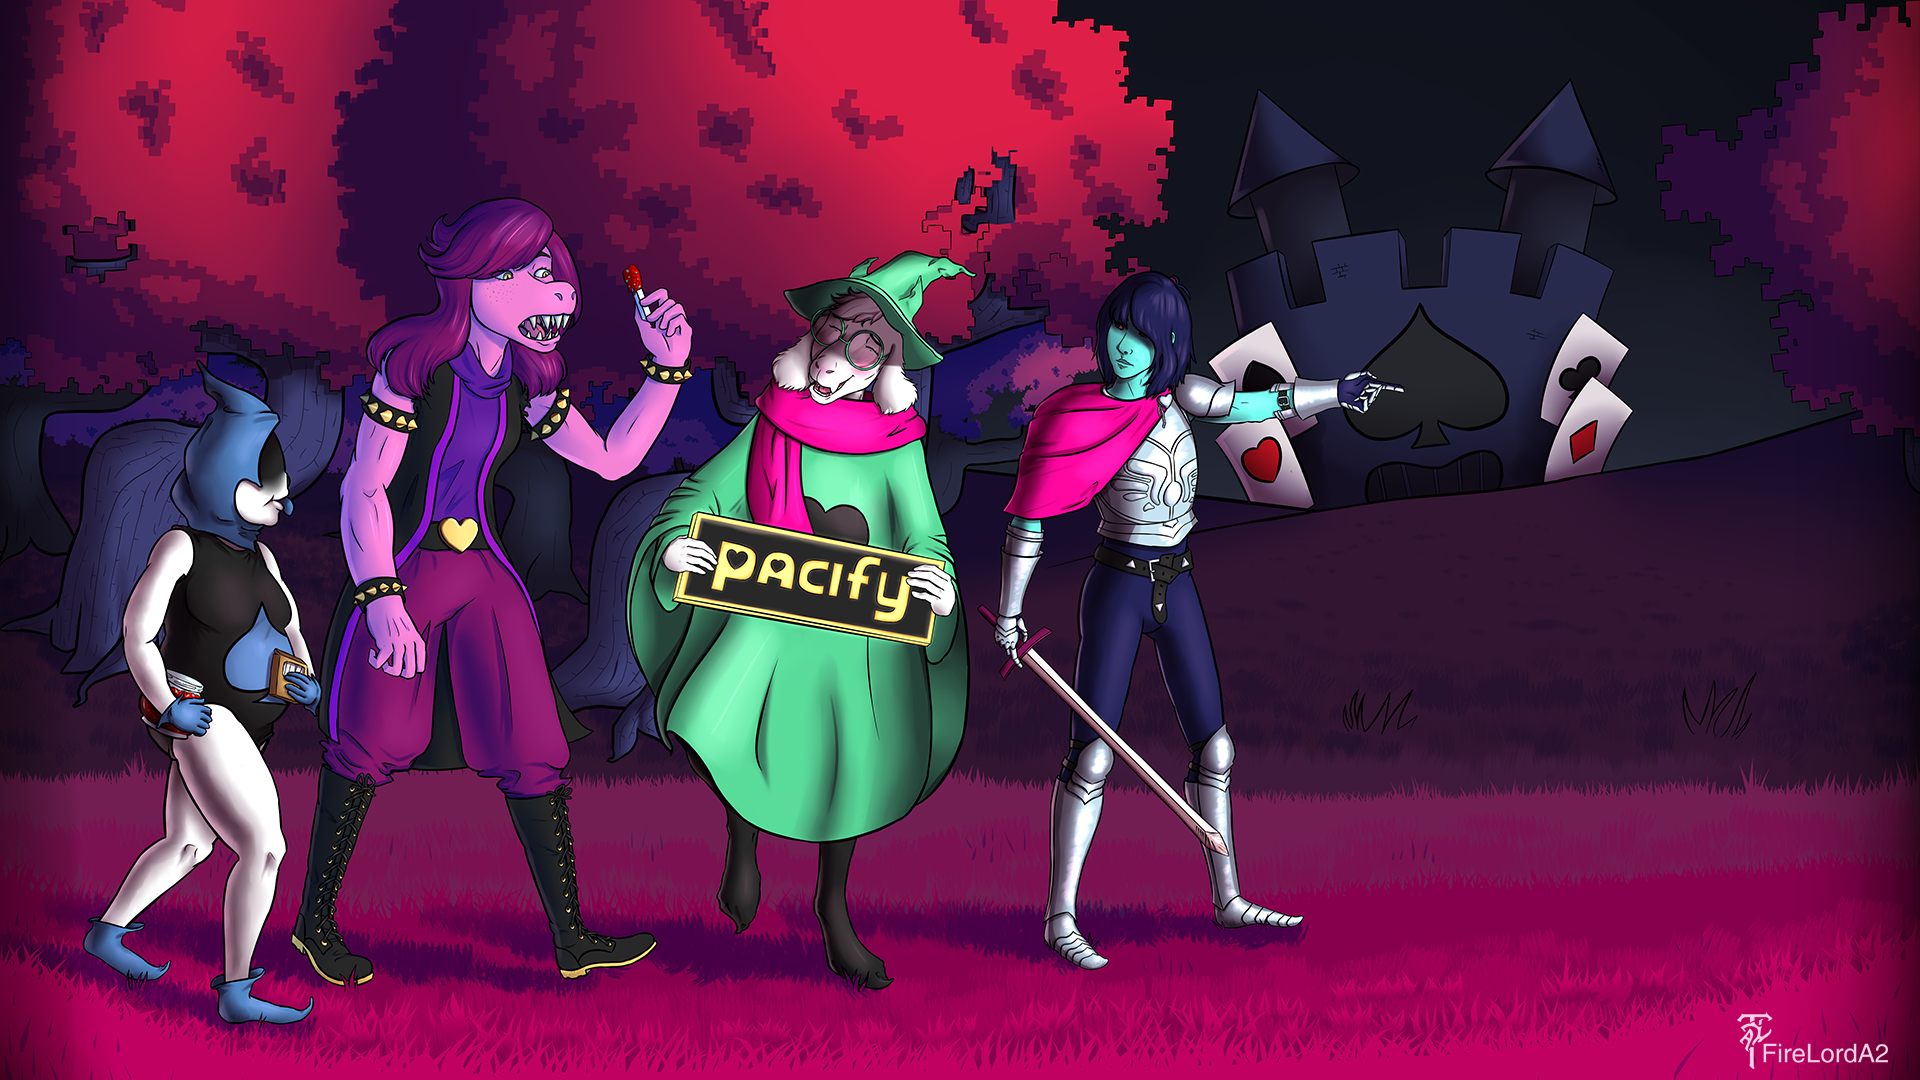 Done with my Deltarune Poster artwork this isnt the original 1920x1080